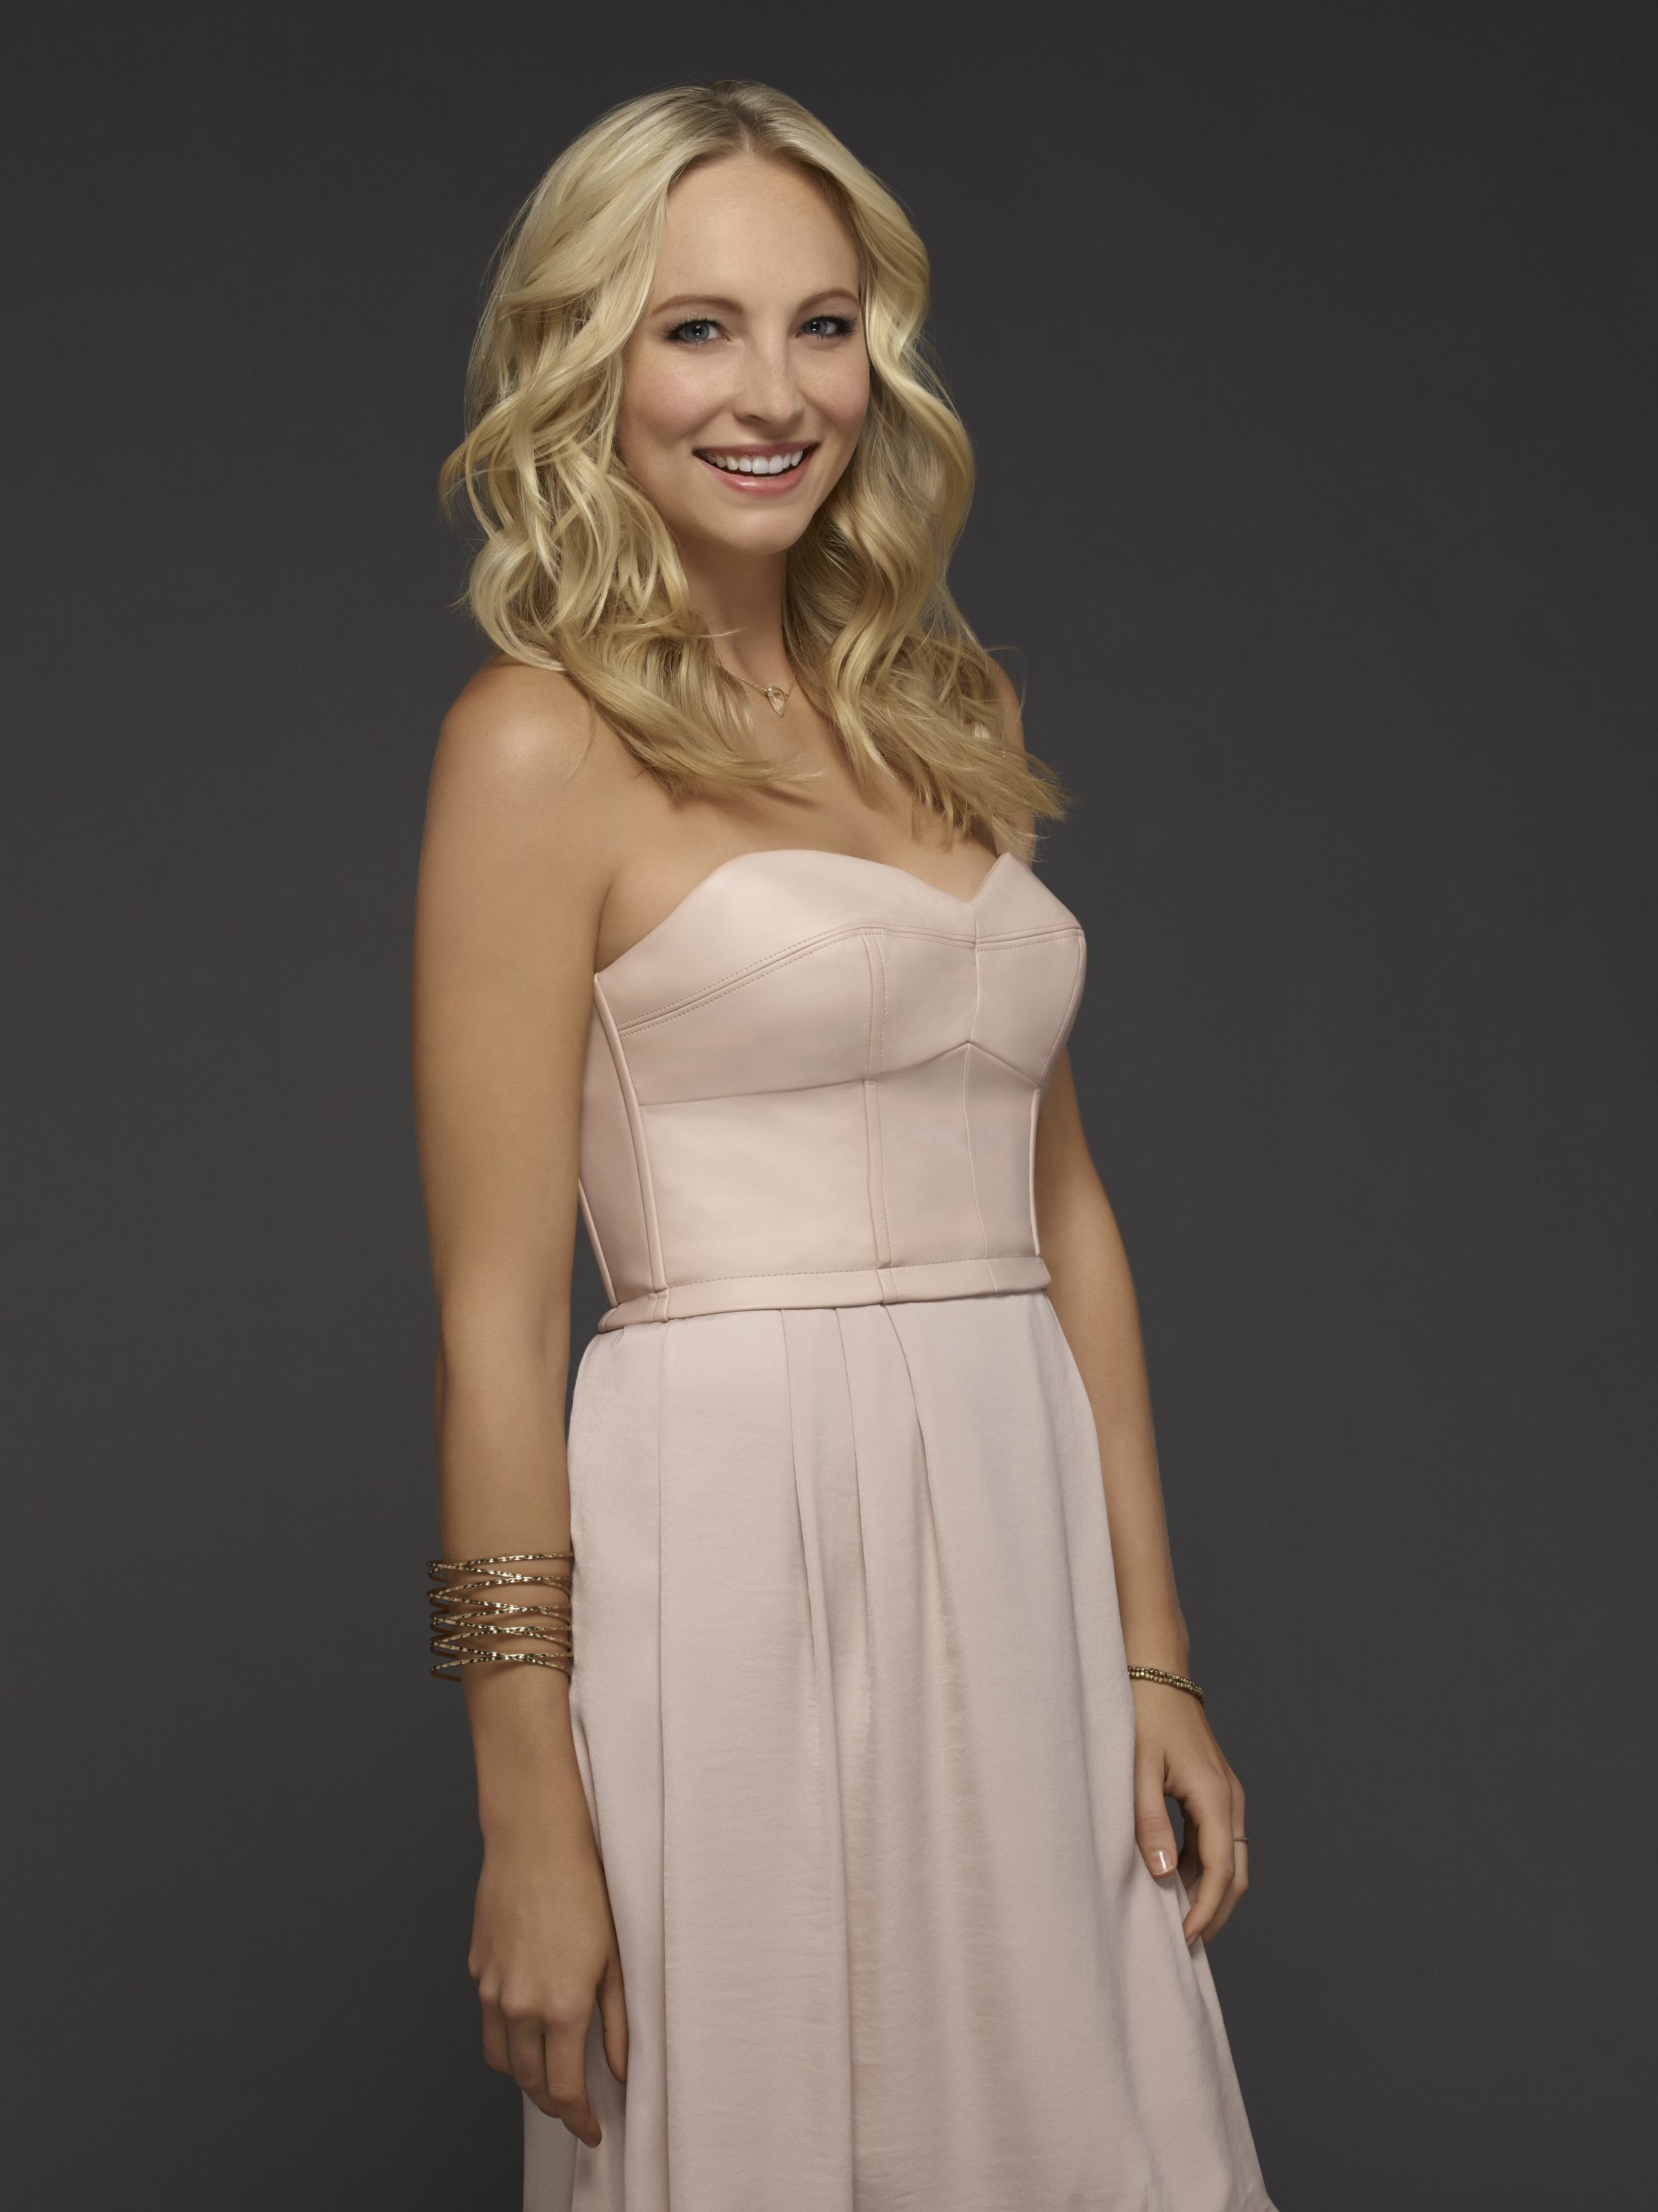 Caroline Forbes season 6 official picture